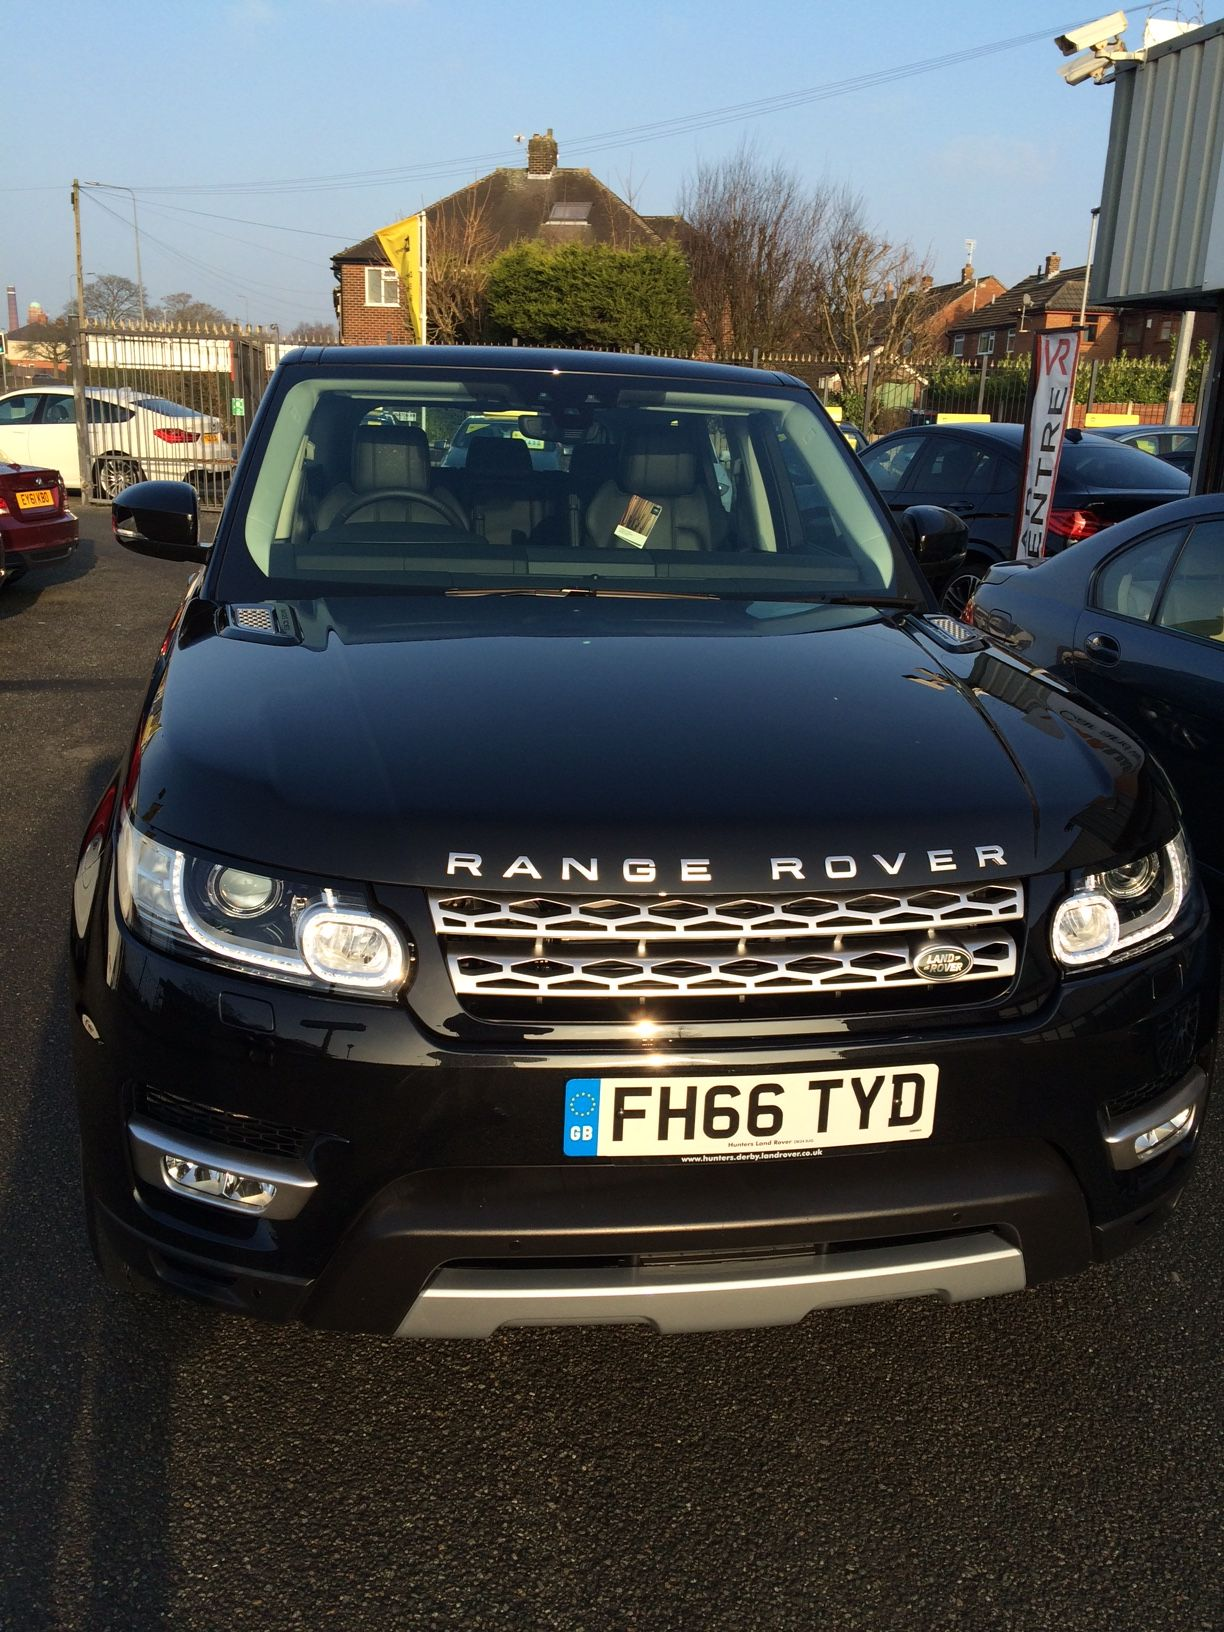 The Range Rover Sport Carleasing Deal Hopefully One Of The Many Cars And Vans Available To Lease From W Range Rover Supercharged Range Rover Sport Car Lease